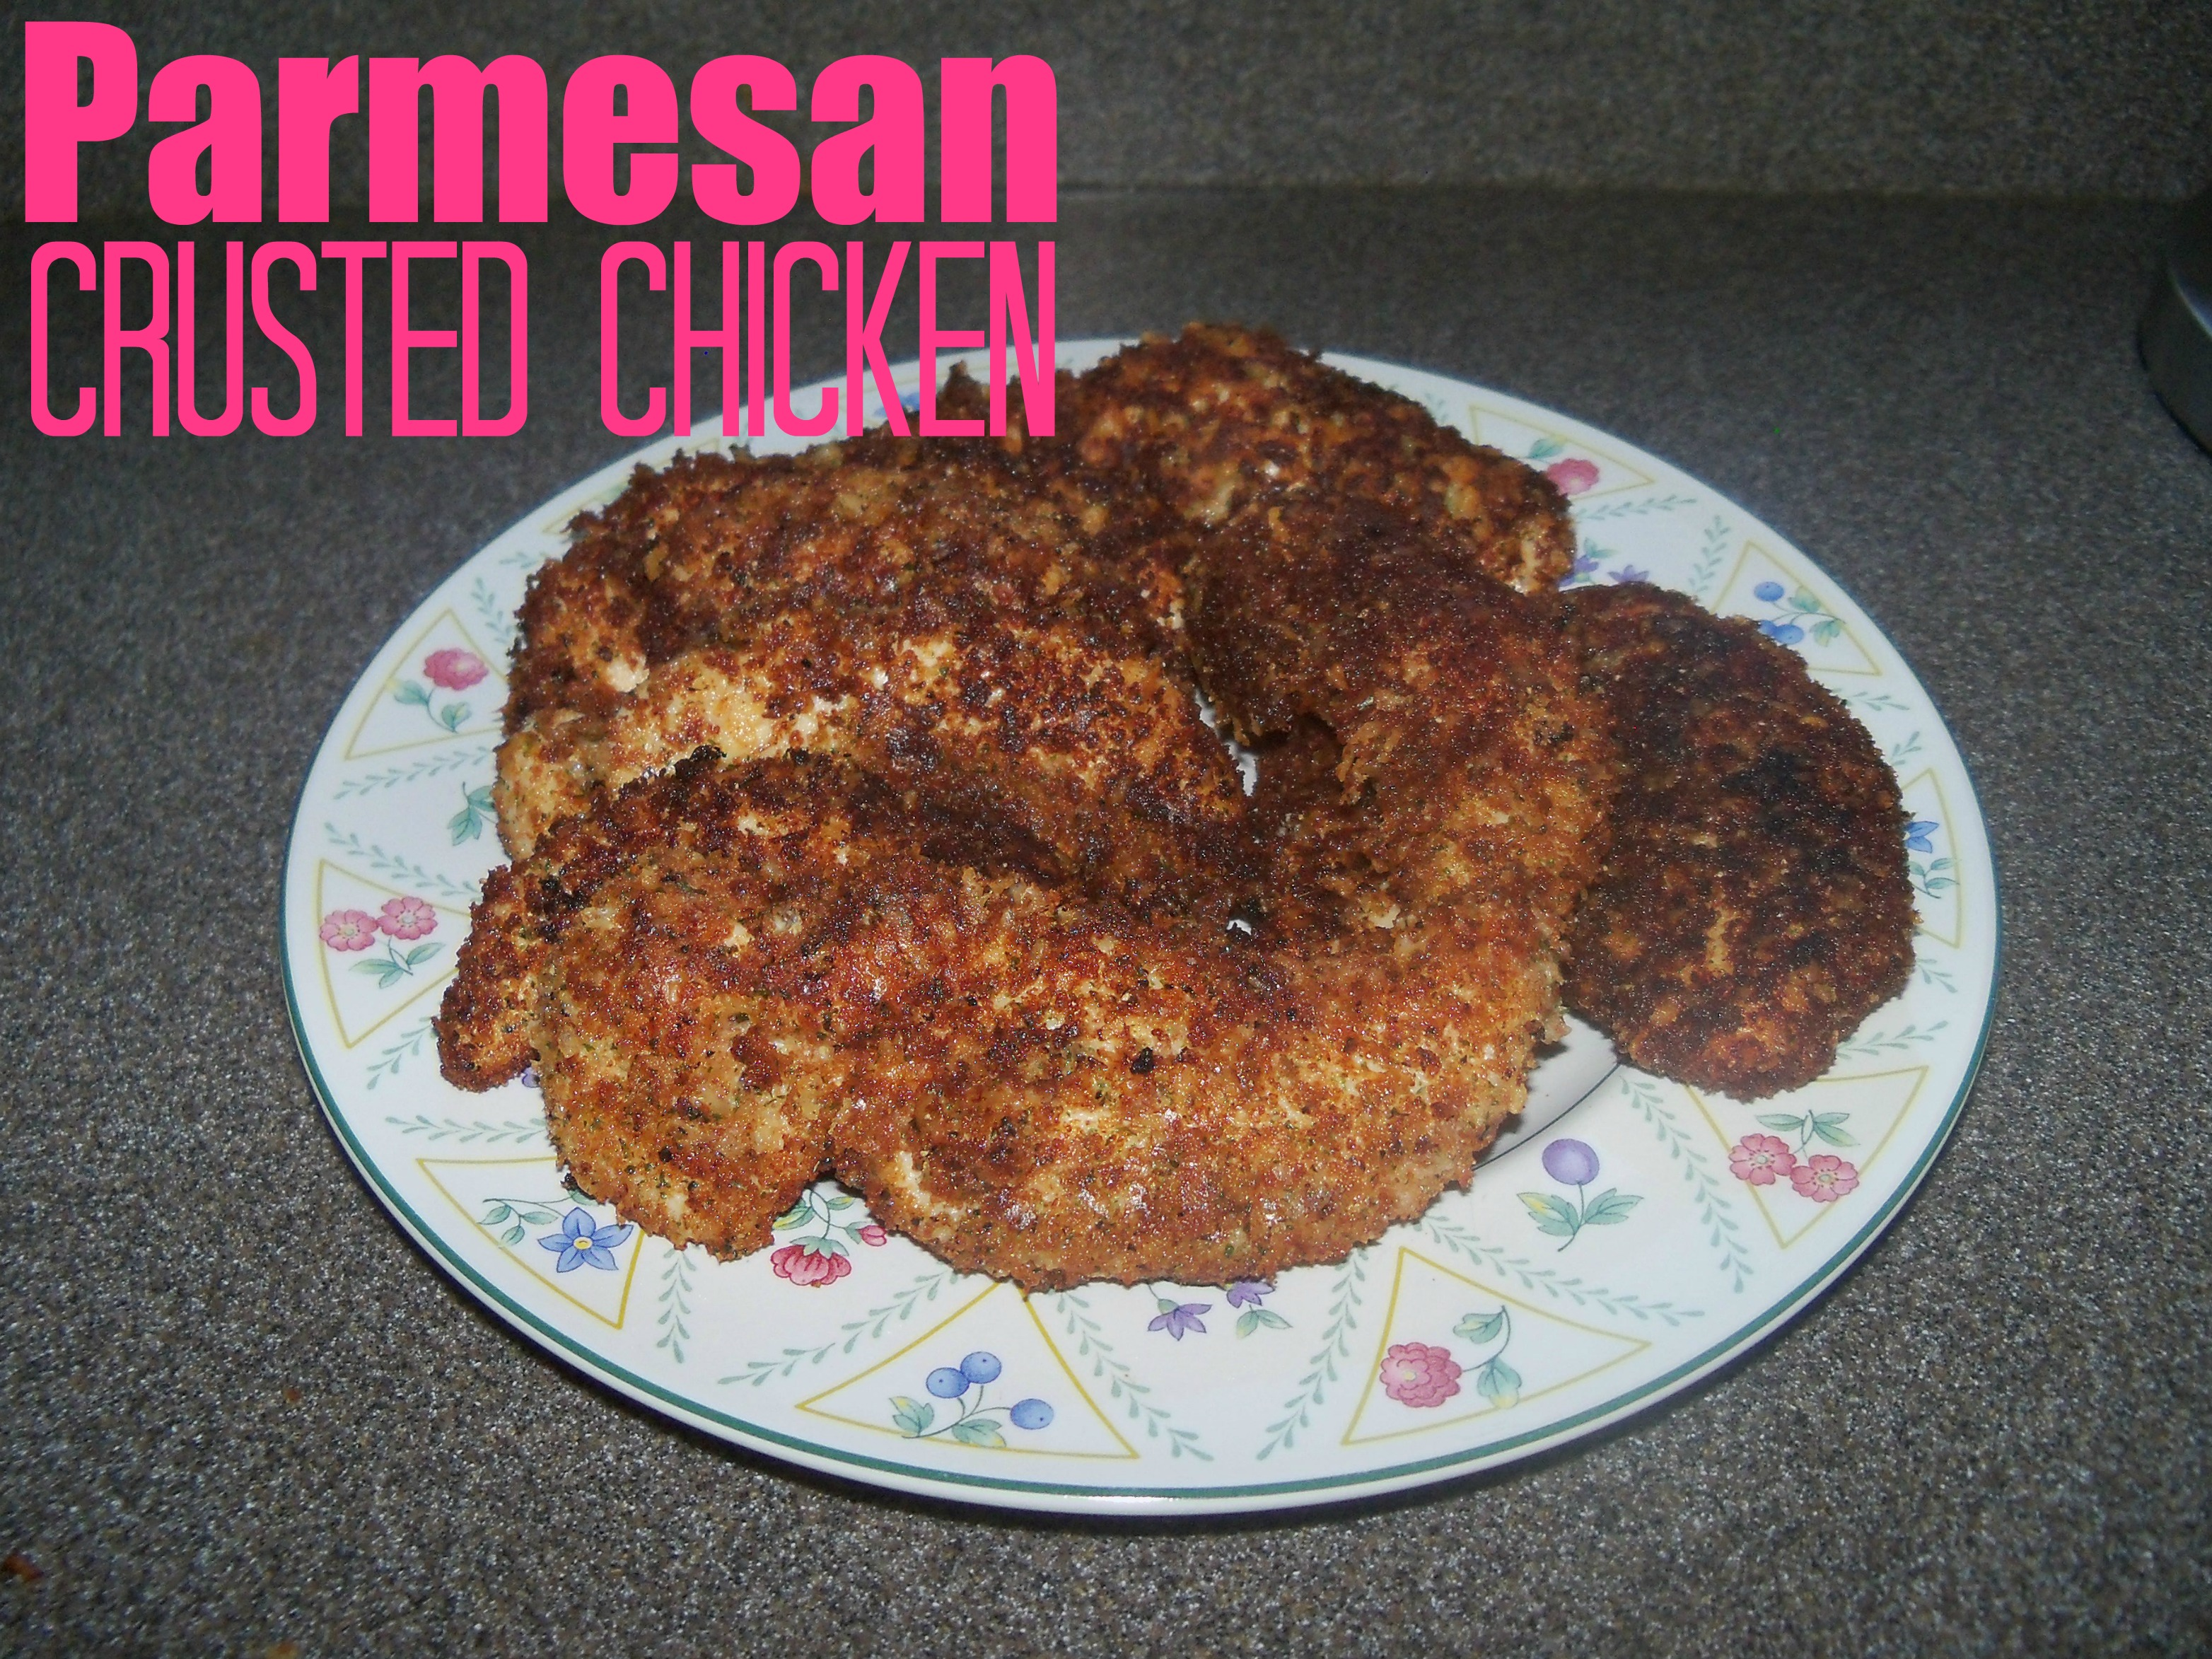 parmesean crusted chicken